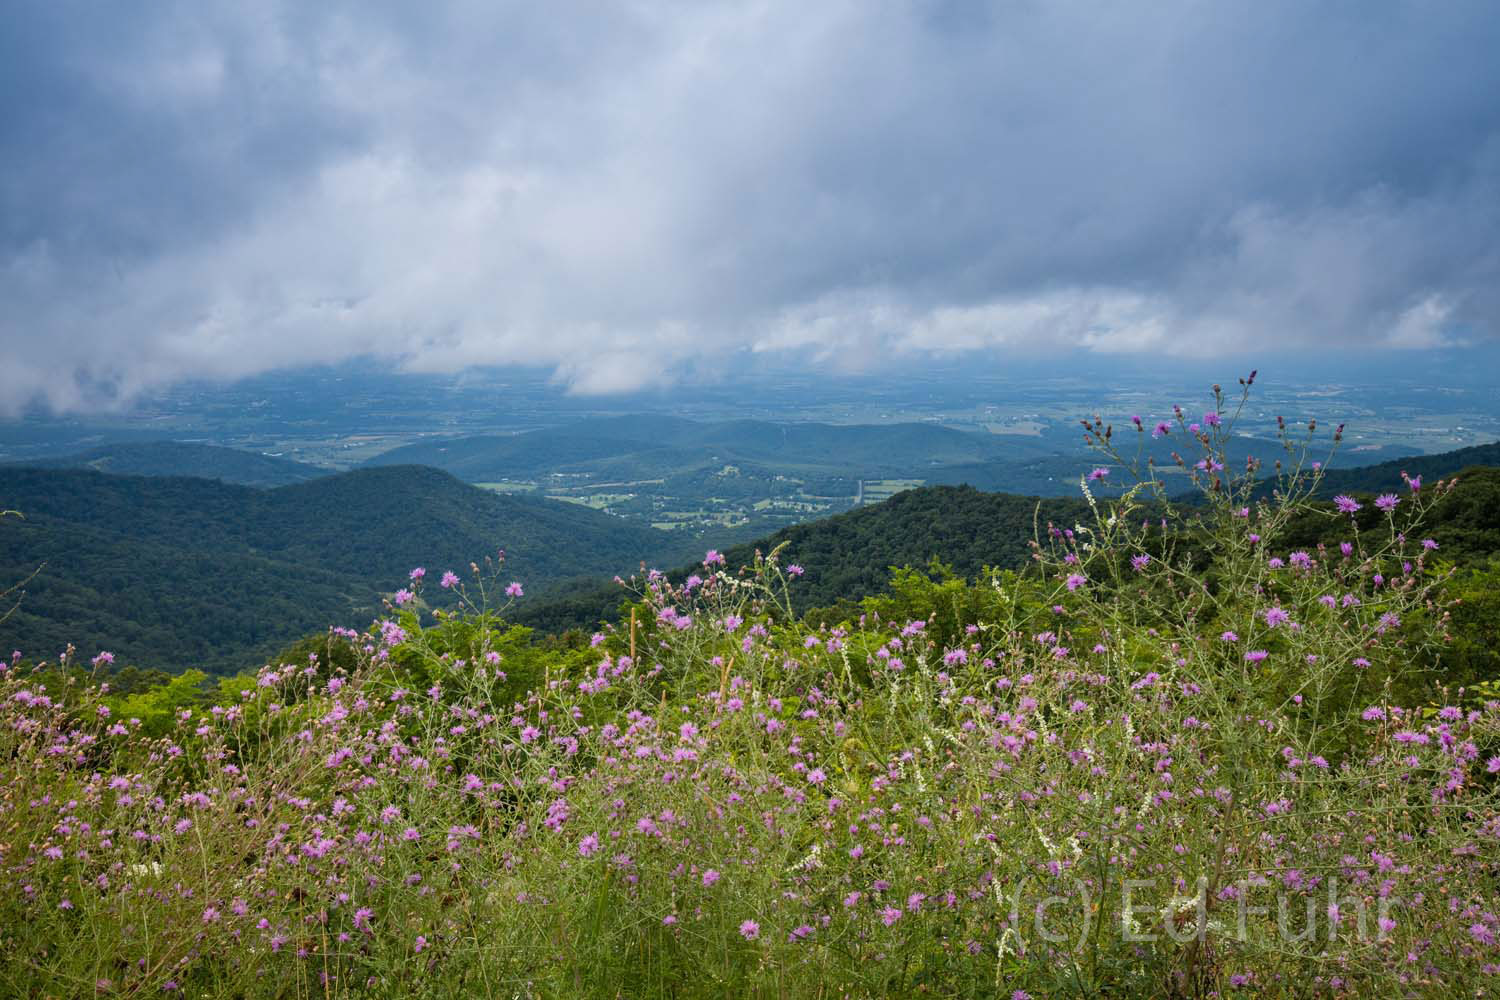 shenandoah national park, wildflowers, summer, image, photographs, photo